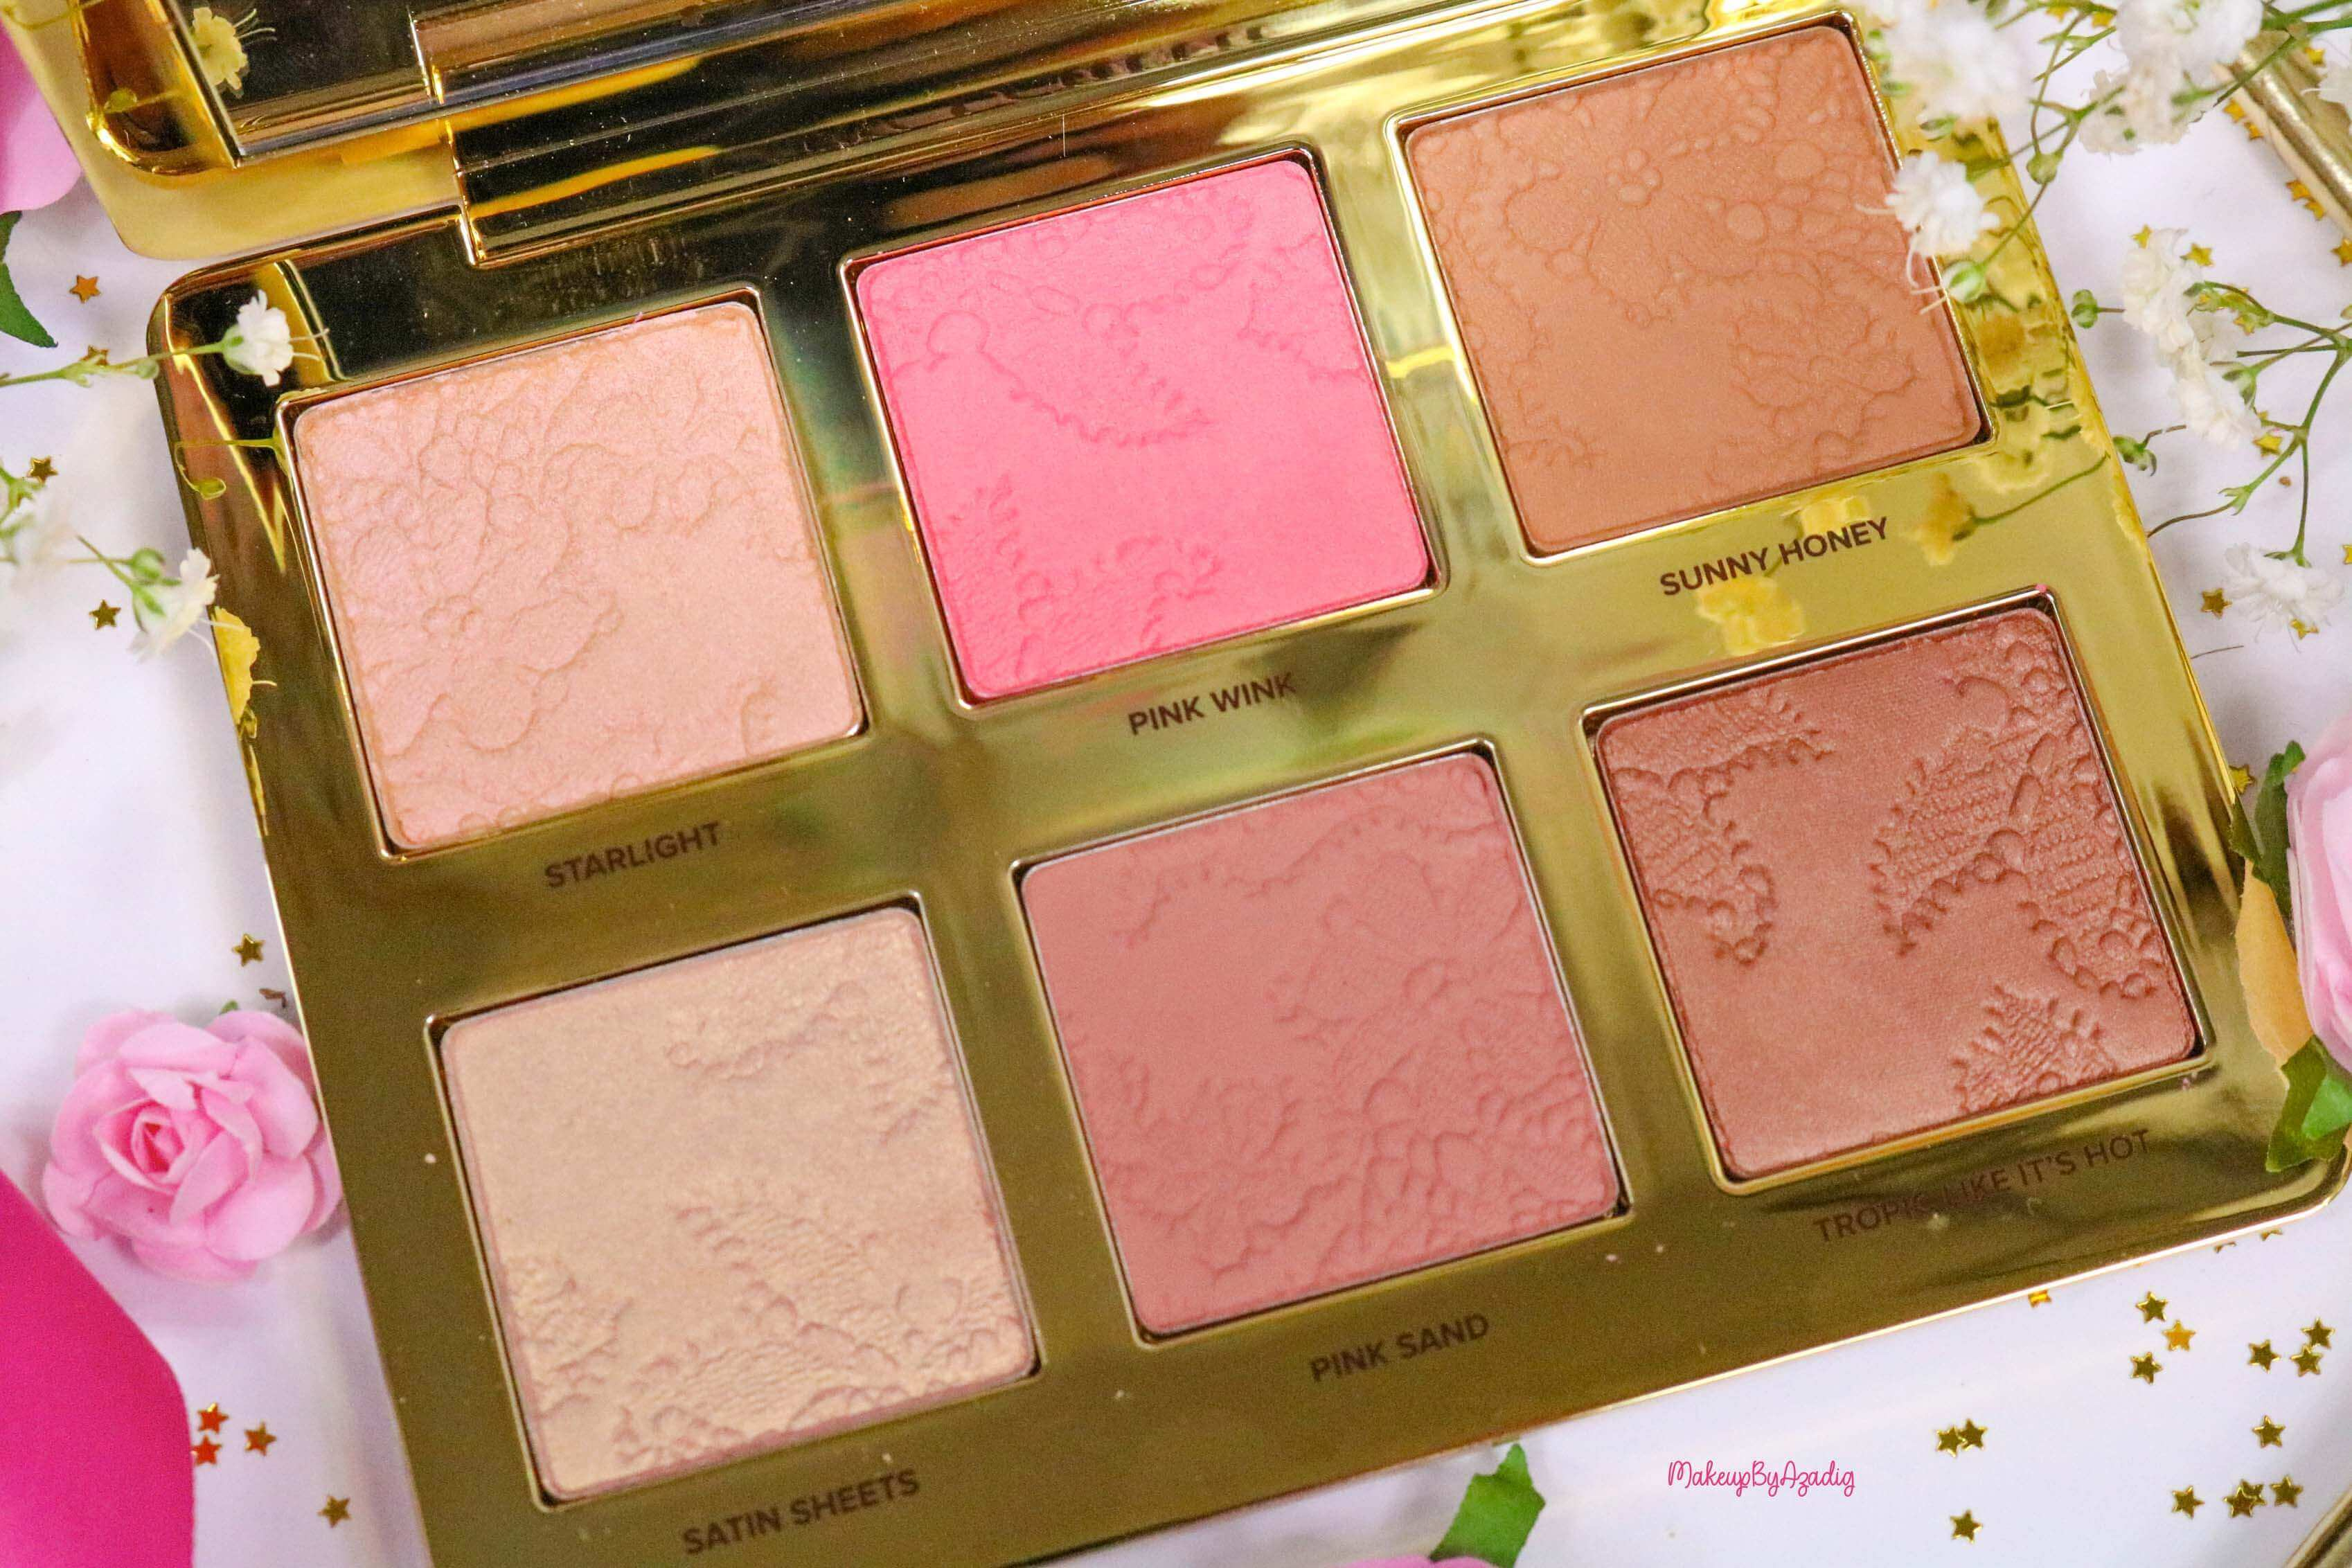 revue-review-palette-teint-natural-face-too-faced-makeupbyazadig-sephora-france-avis-prix-swatch-blush-highlighter-zoom